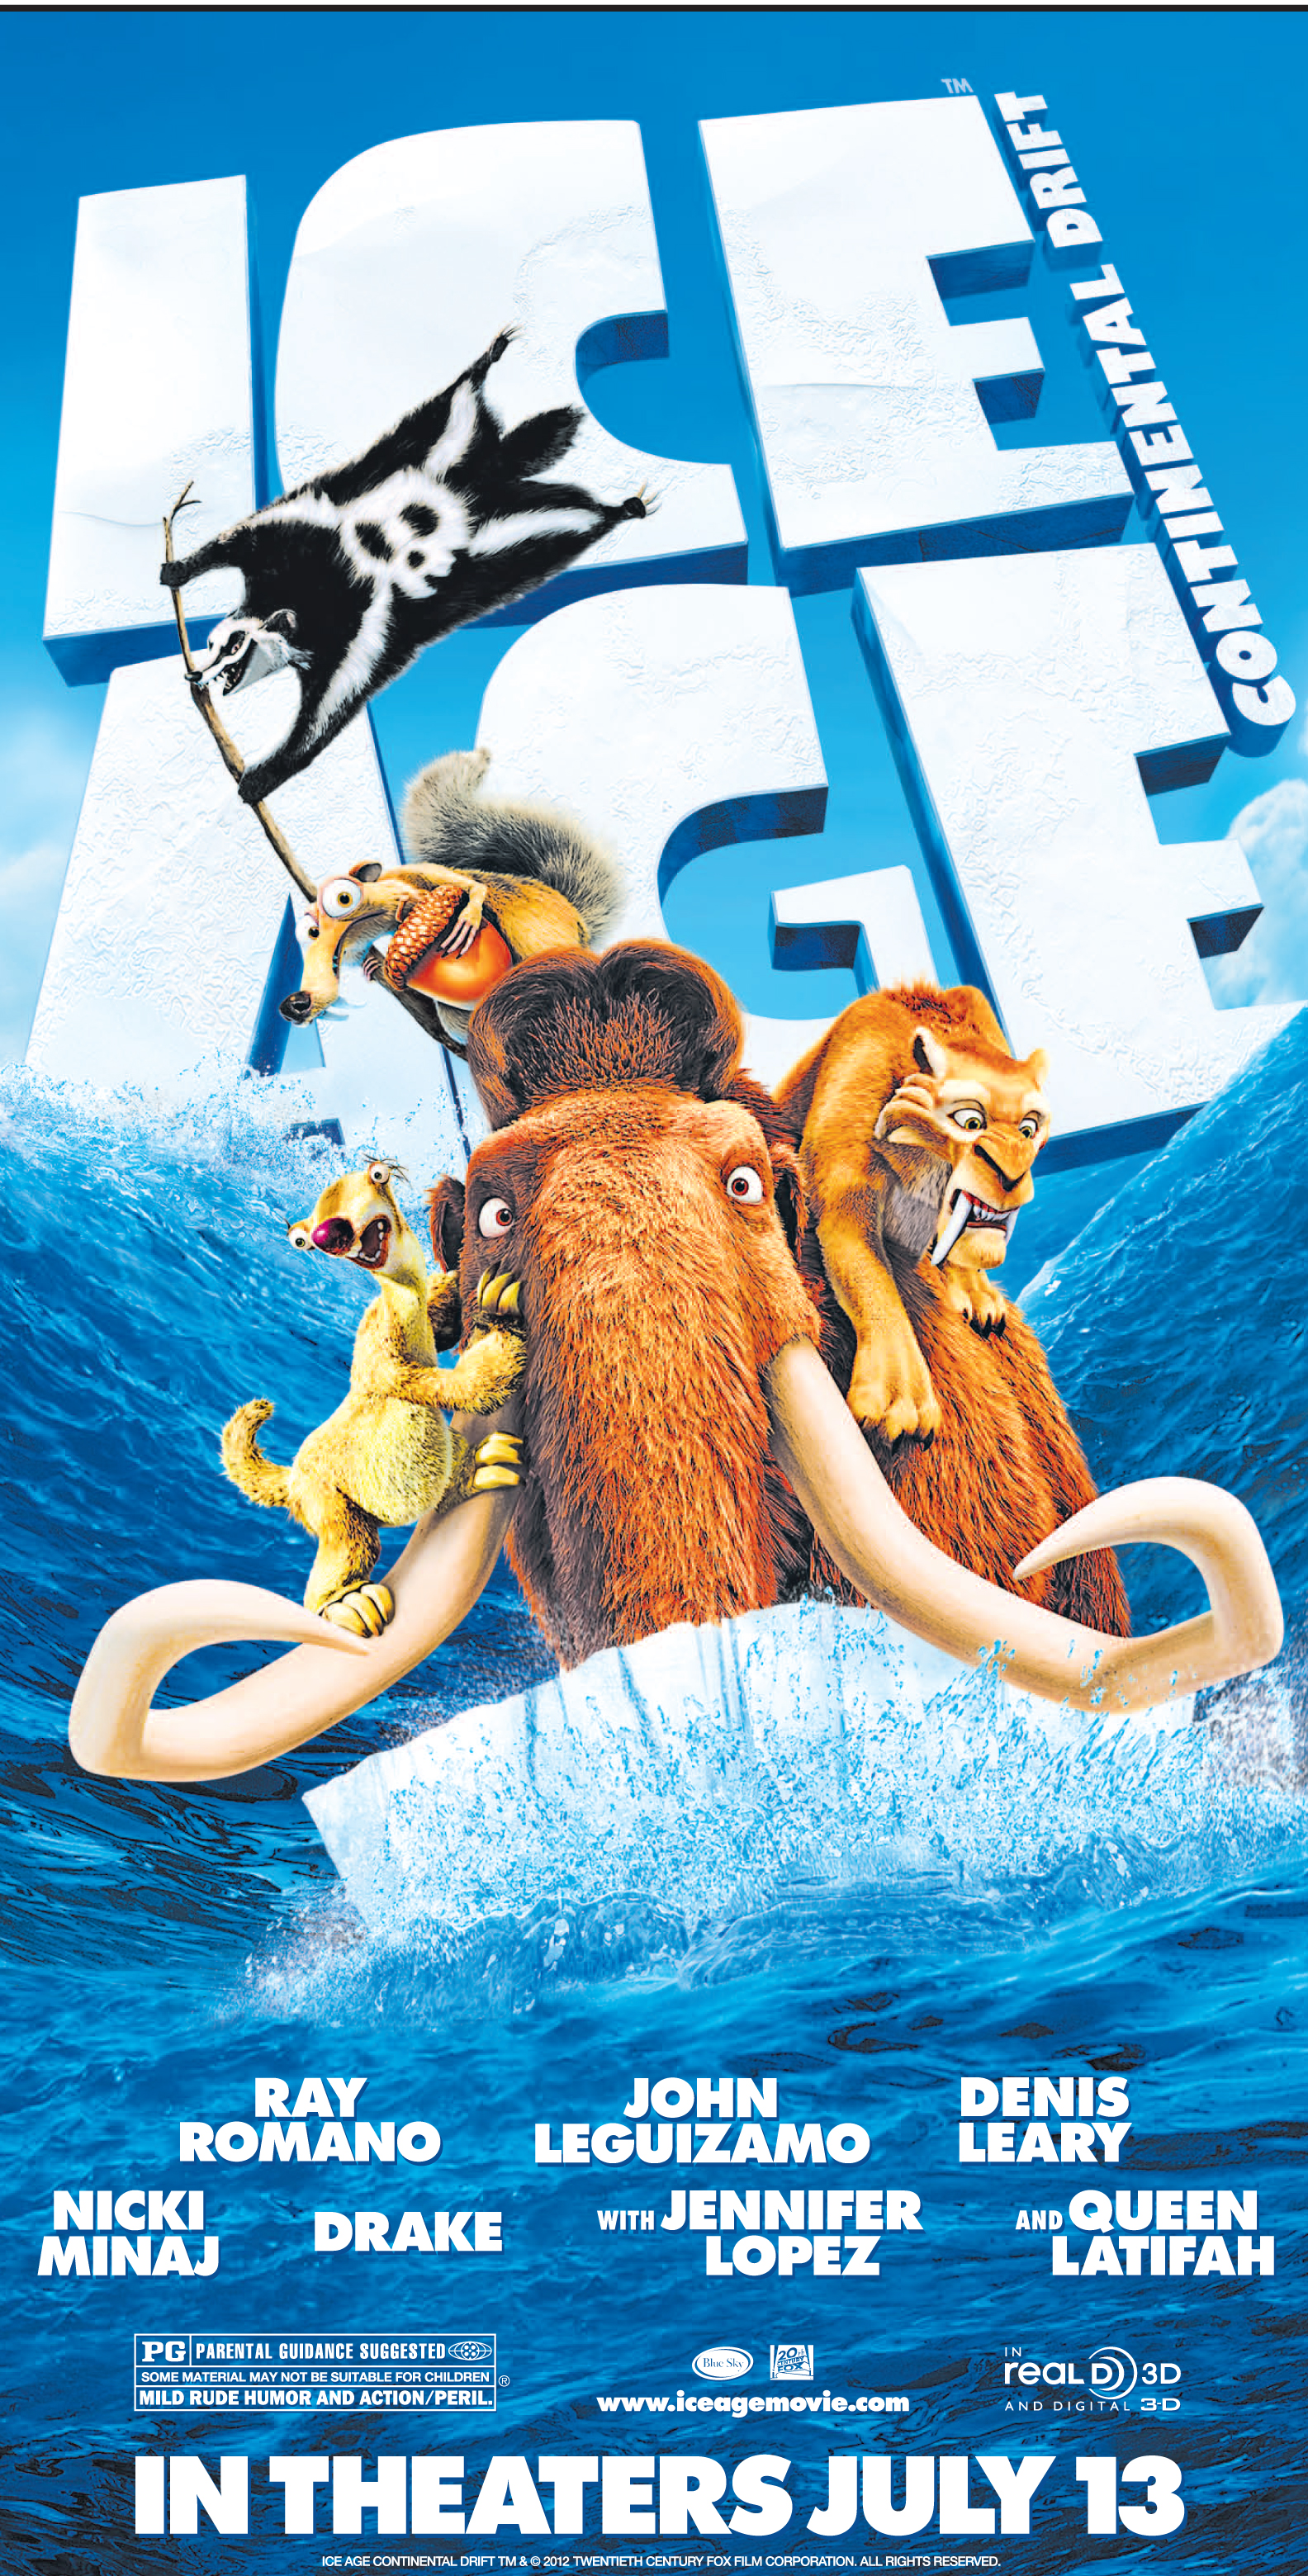 Win Tickets to See a Sneak Preview of Ice Age July 7th #clt